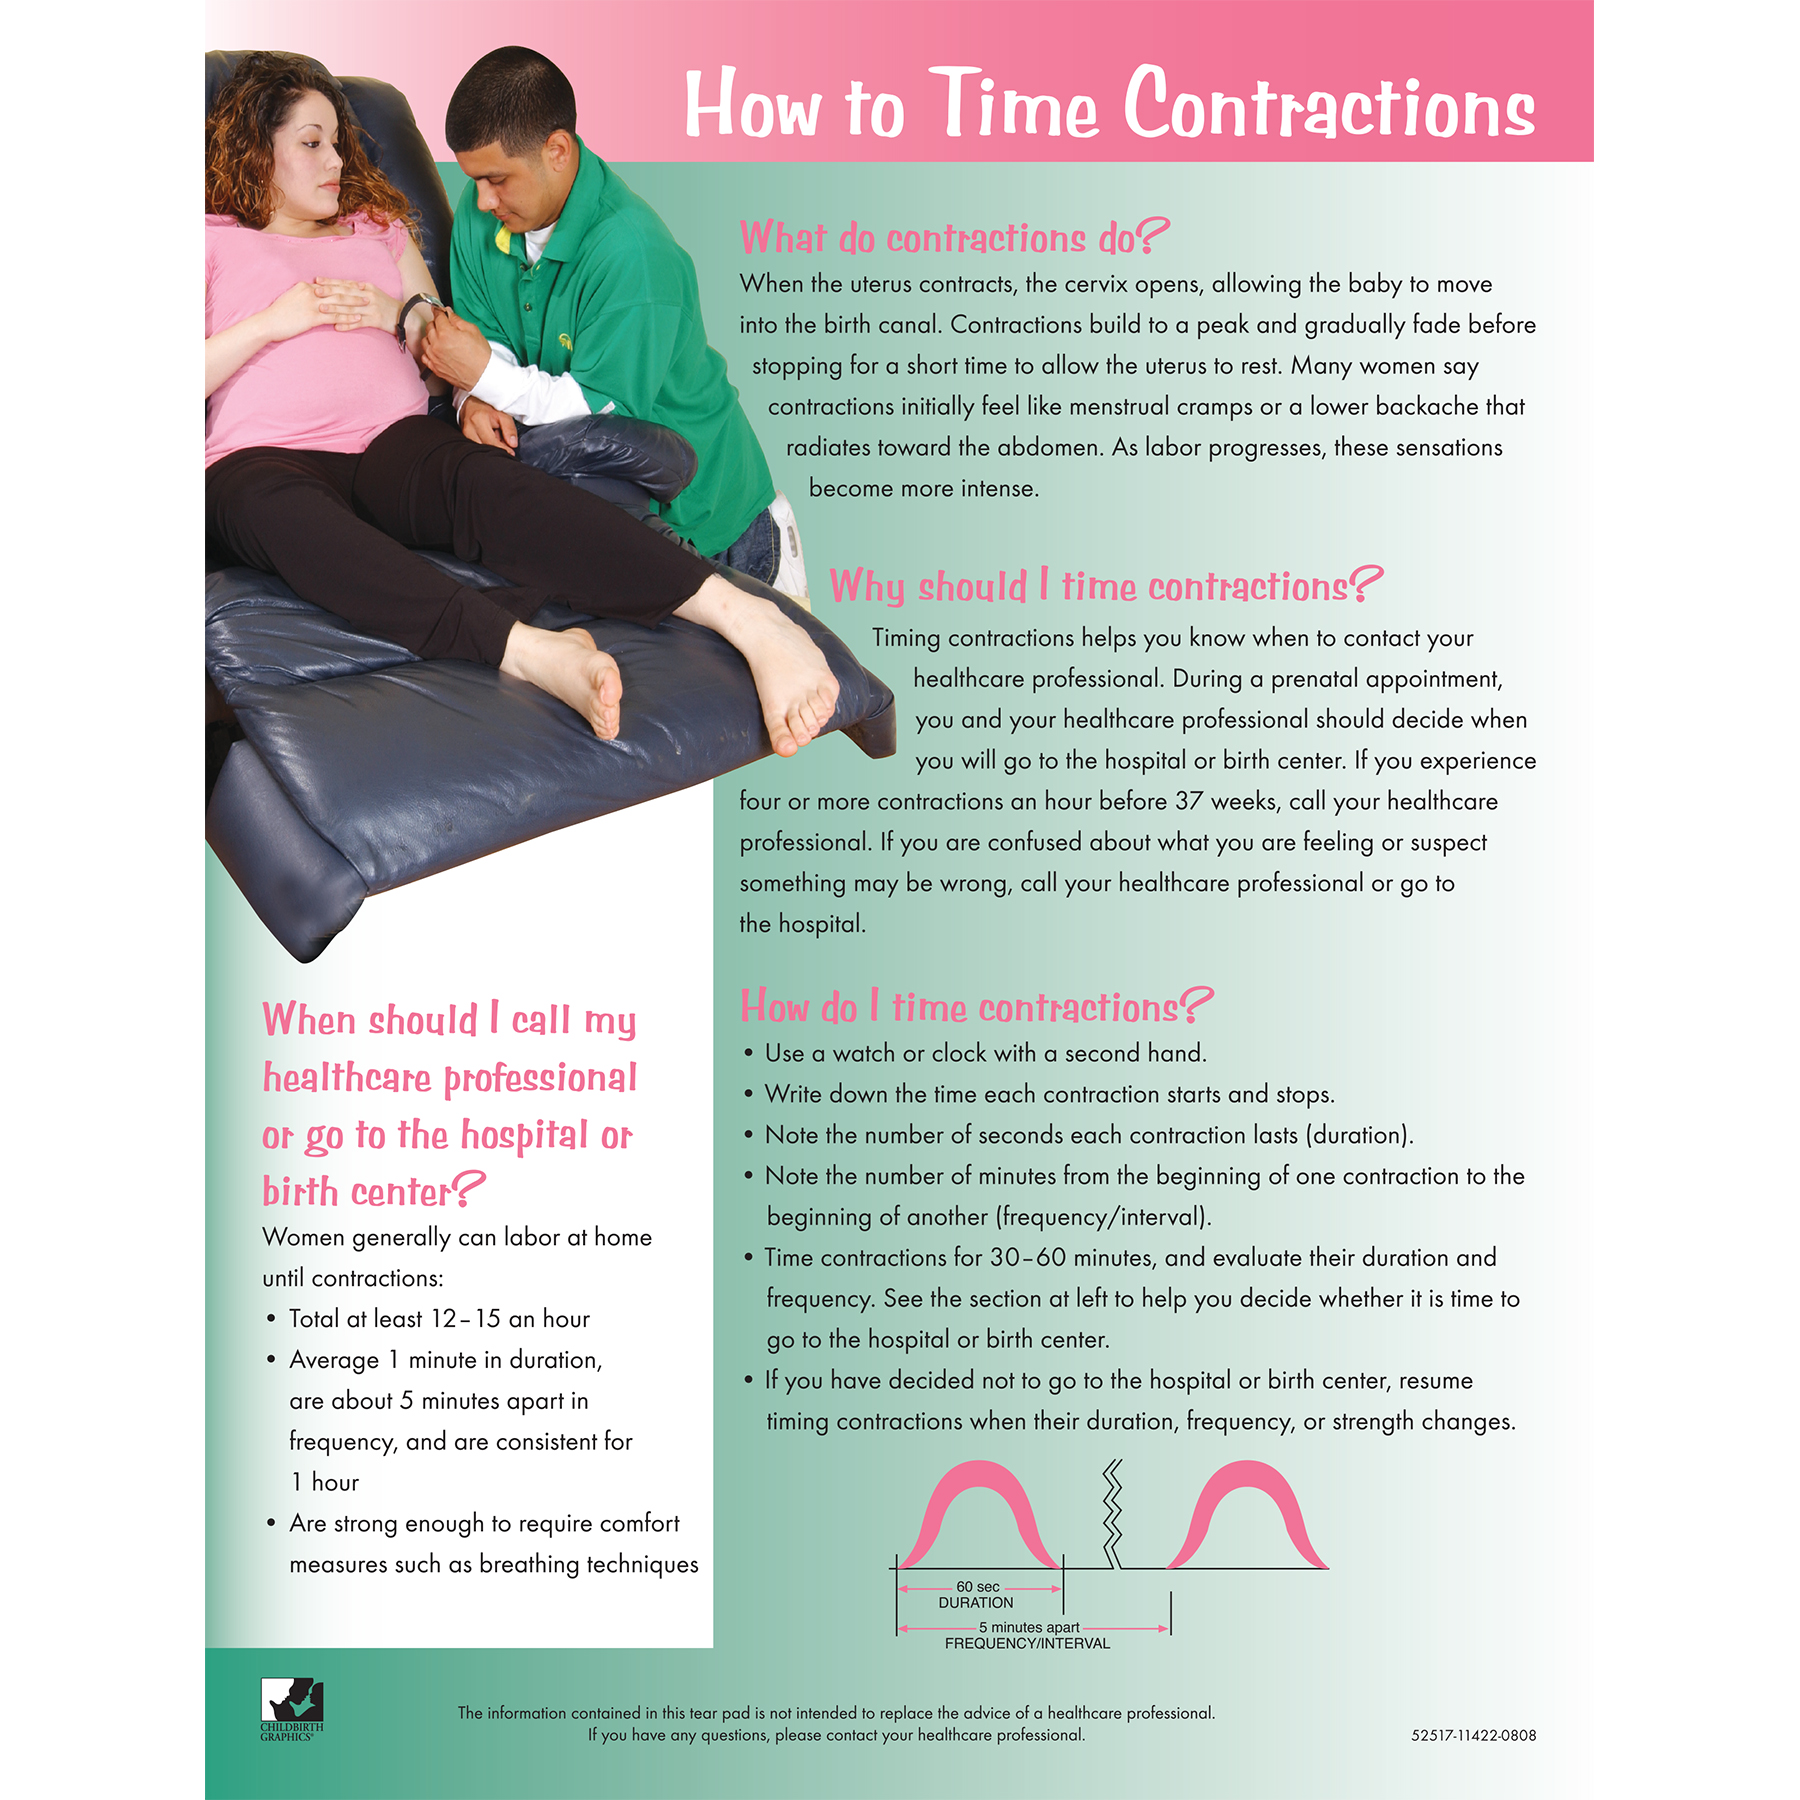 How to Time Contractions 4-color tear pad, questions answers diagram, Childbirth Graphics, 52517